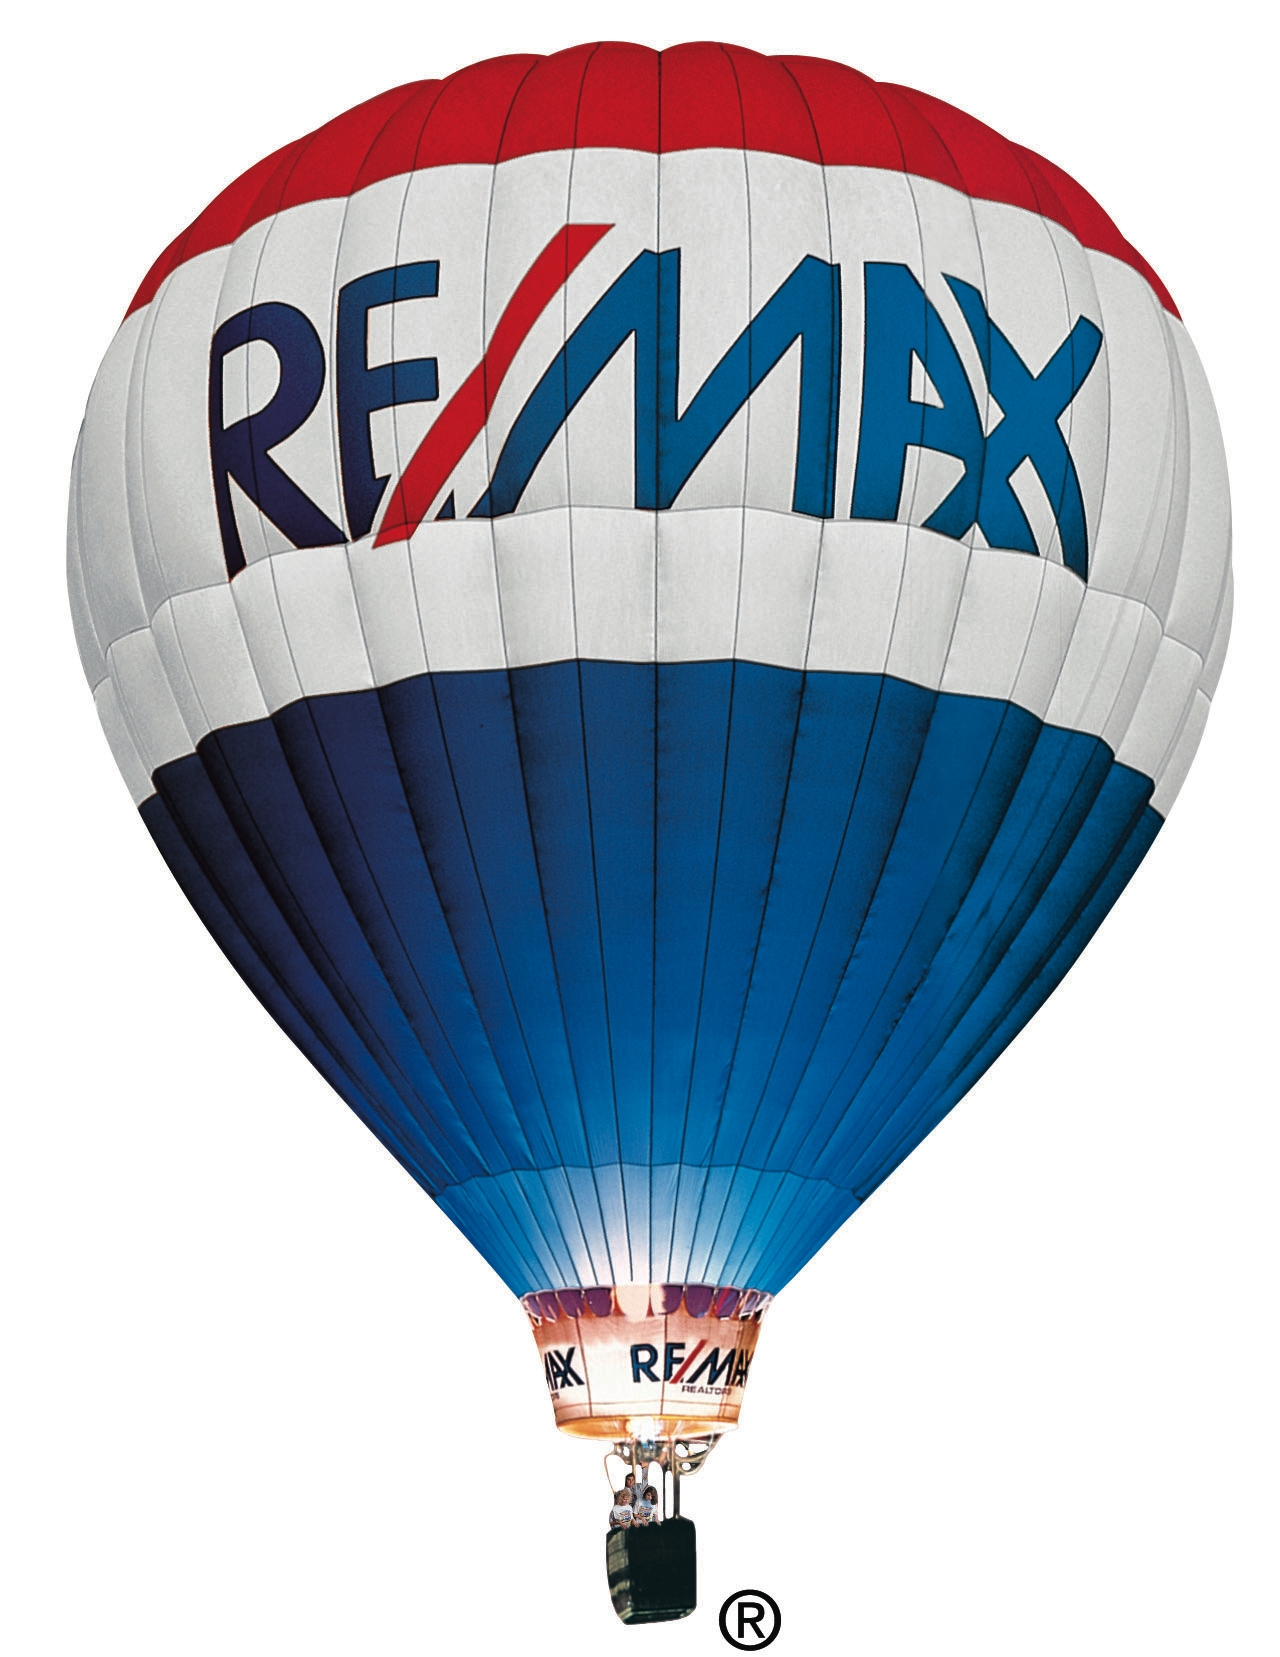 REMAX - Carlton Woods Homes